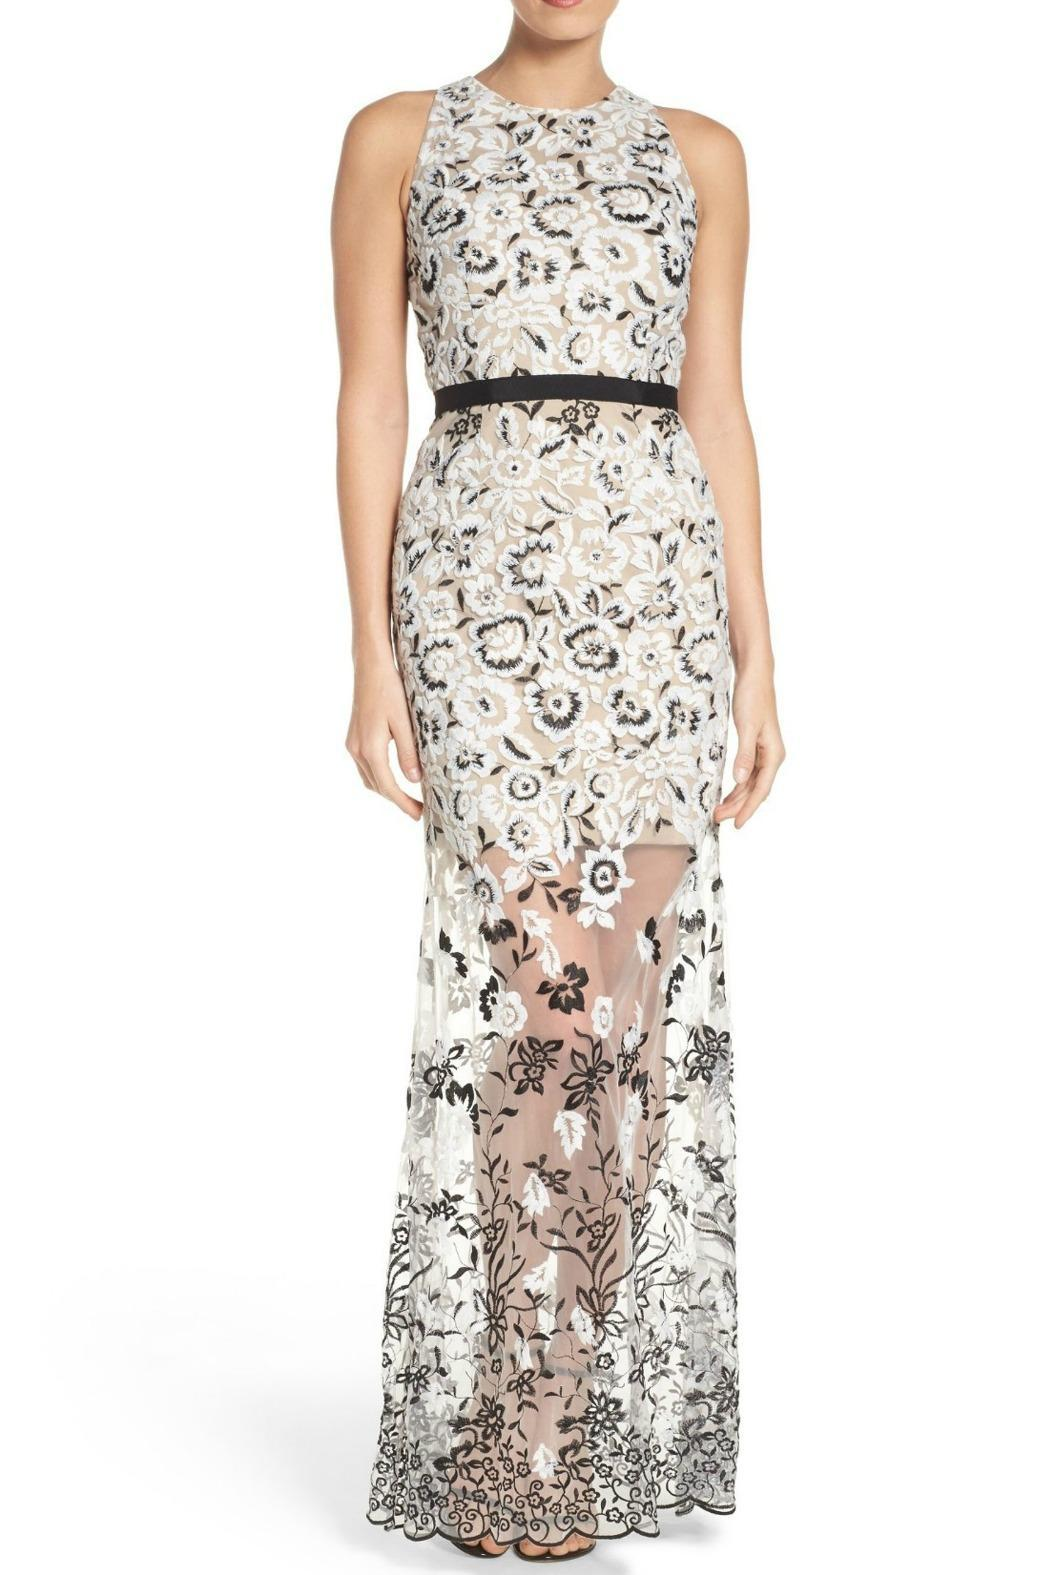 Aidan by Aidan Mattox Embroidered Gown from Ohio by e.j. hannah ...